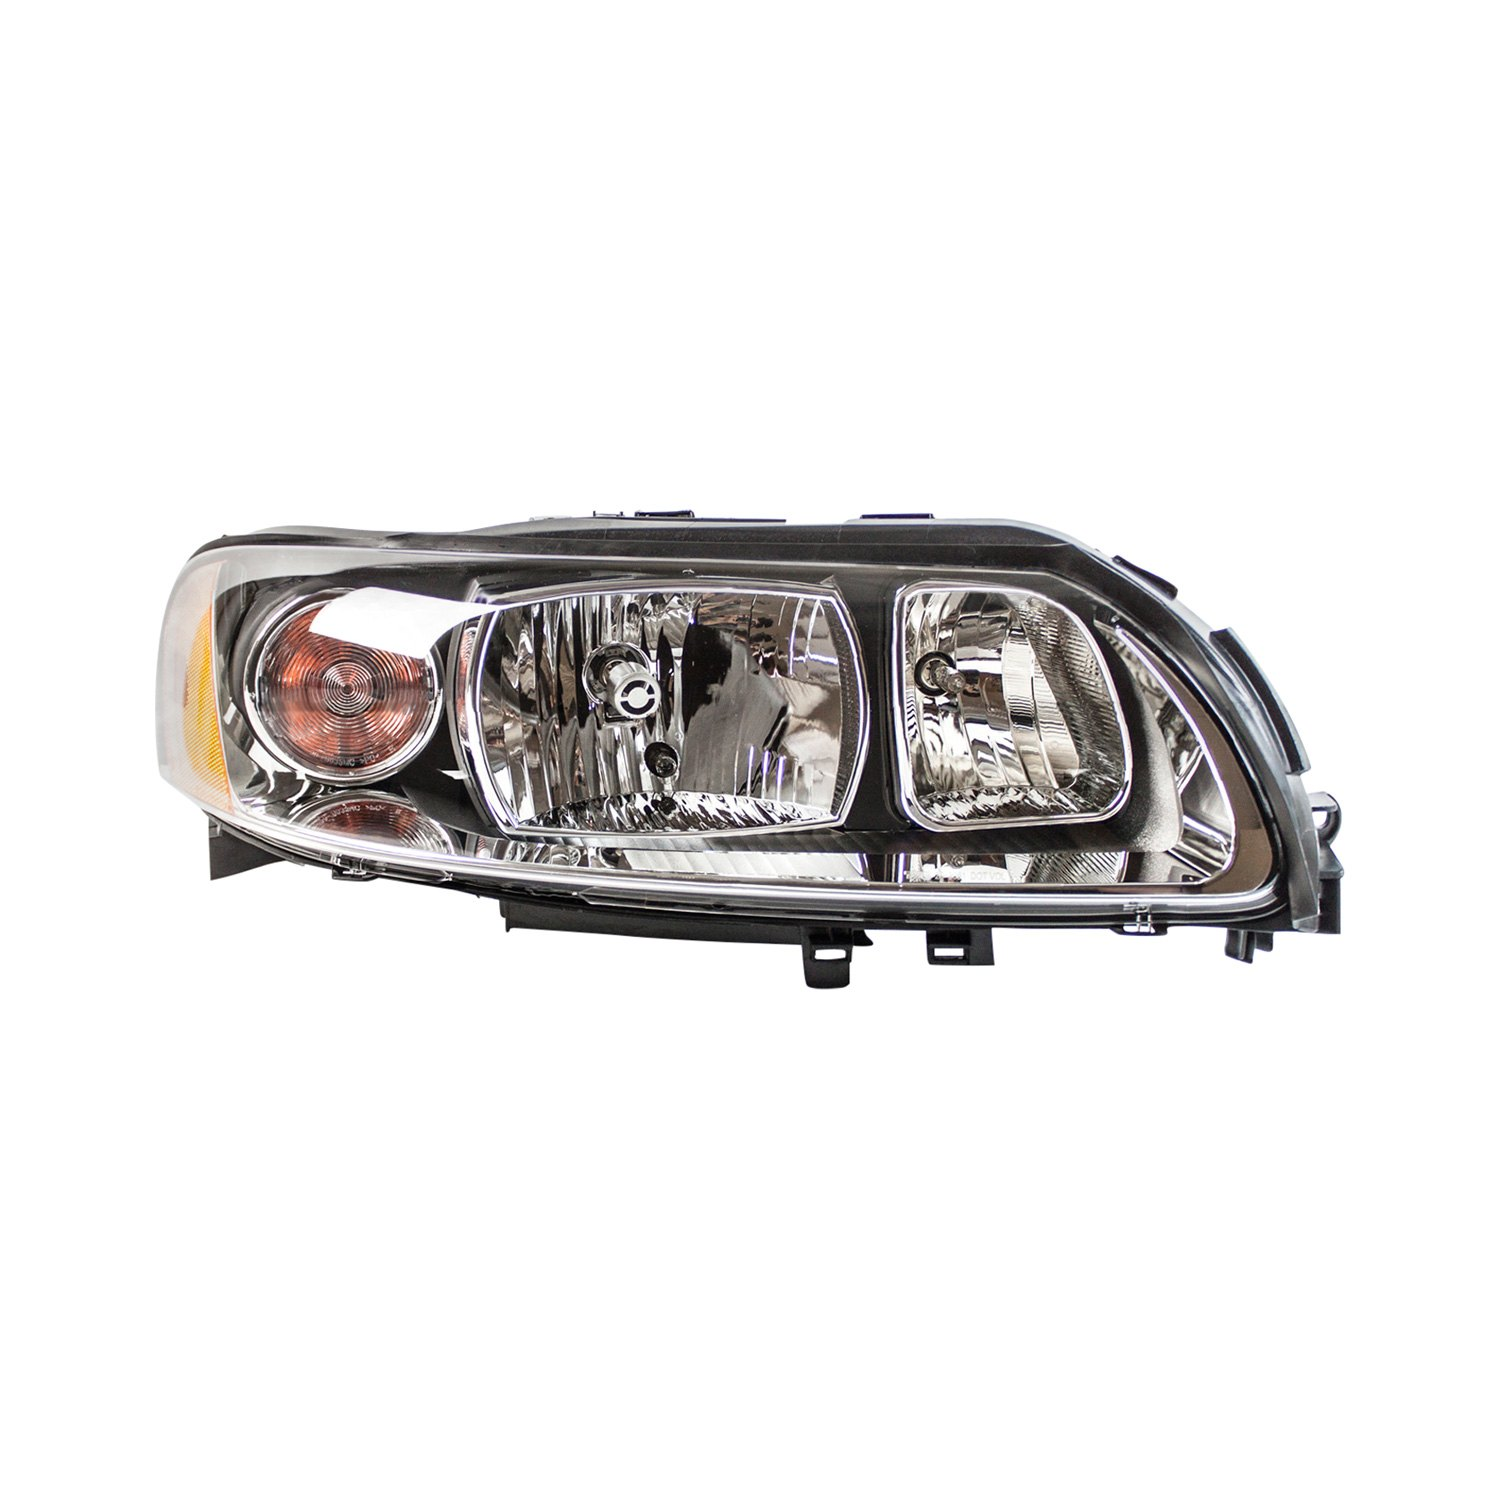 2001 volvo v70 headlight bulb replacement delta 3 handle tub and shower faucet